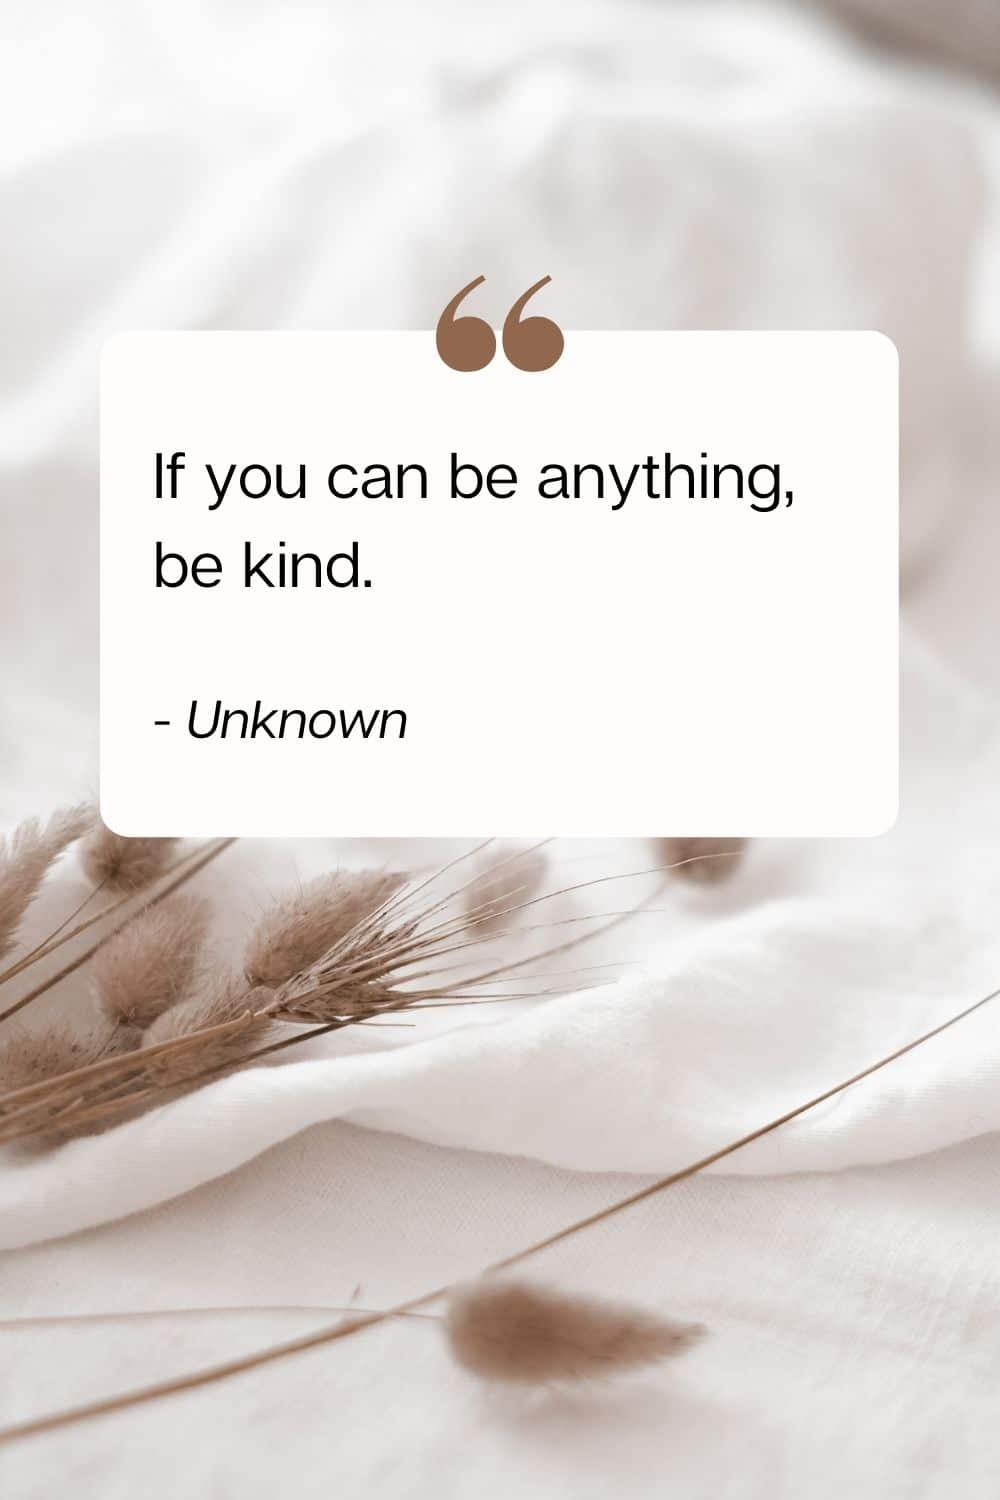 quote - If you can be anything, be kind. - Unknown